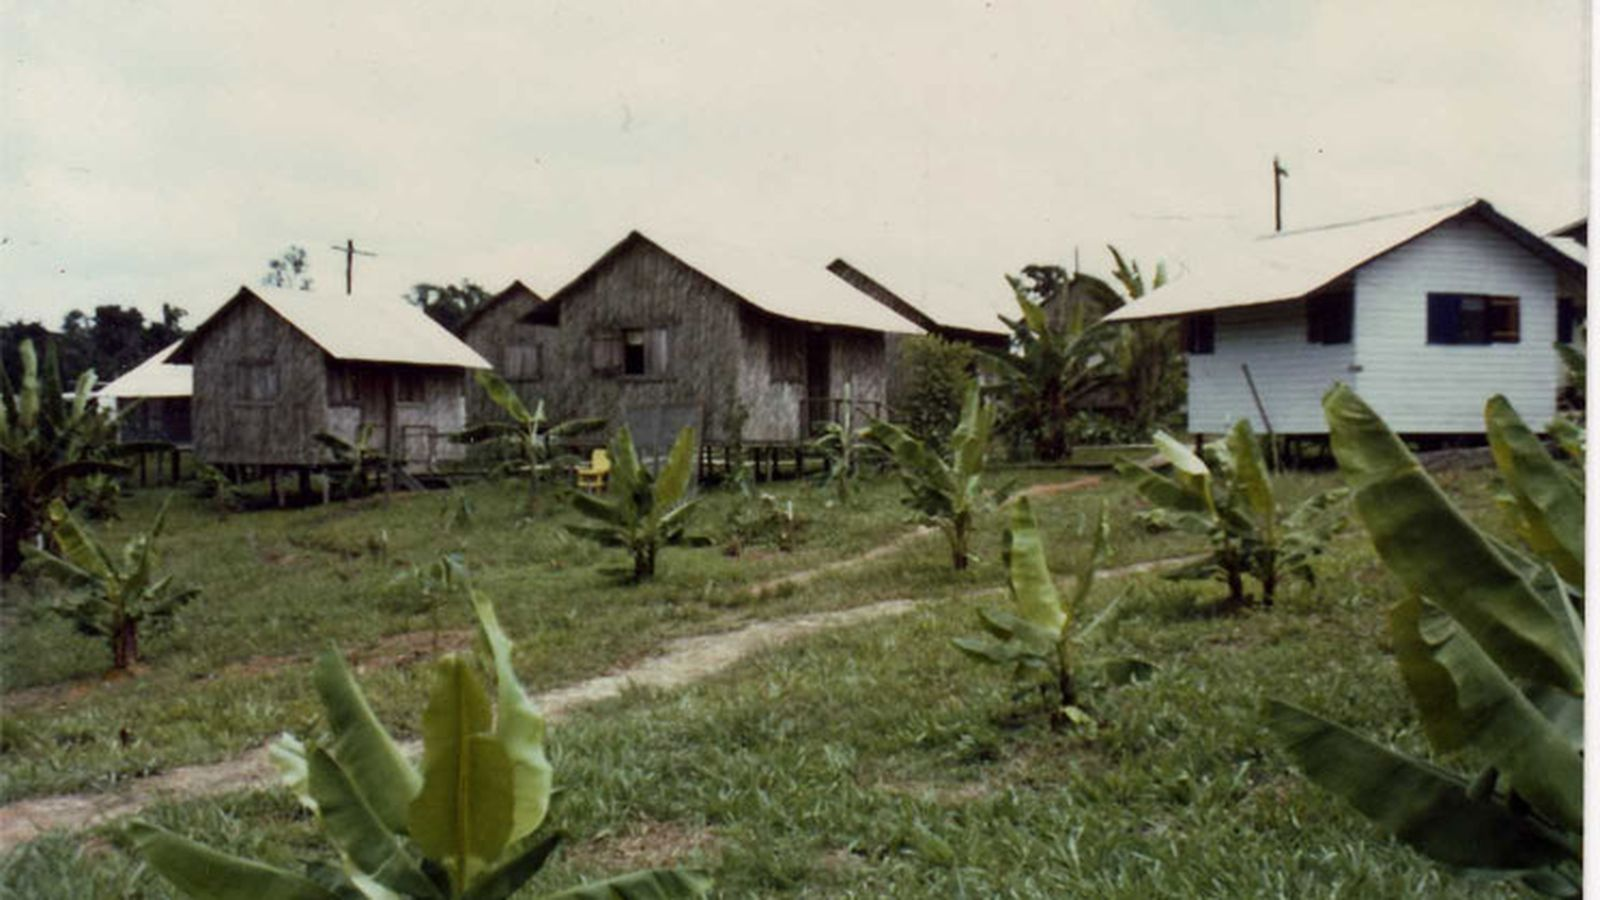 Remembering The Tragedy Of Jonestown 35 Years Ago Today